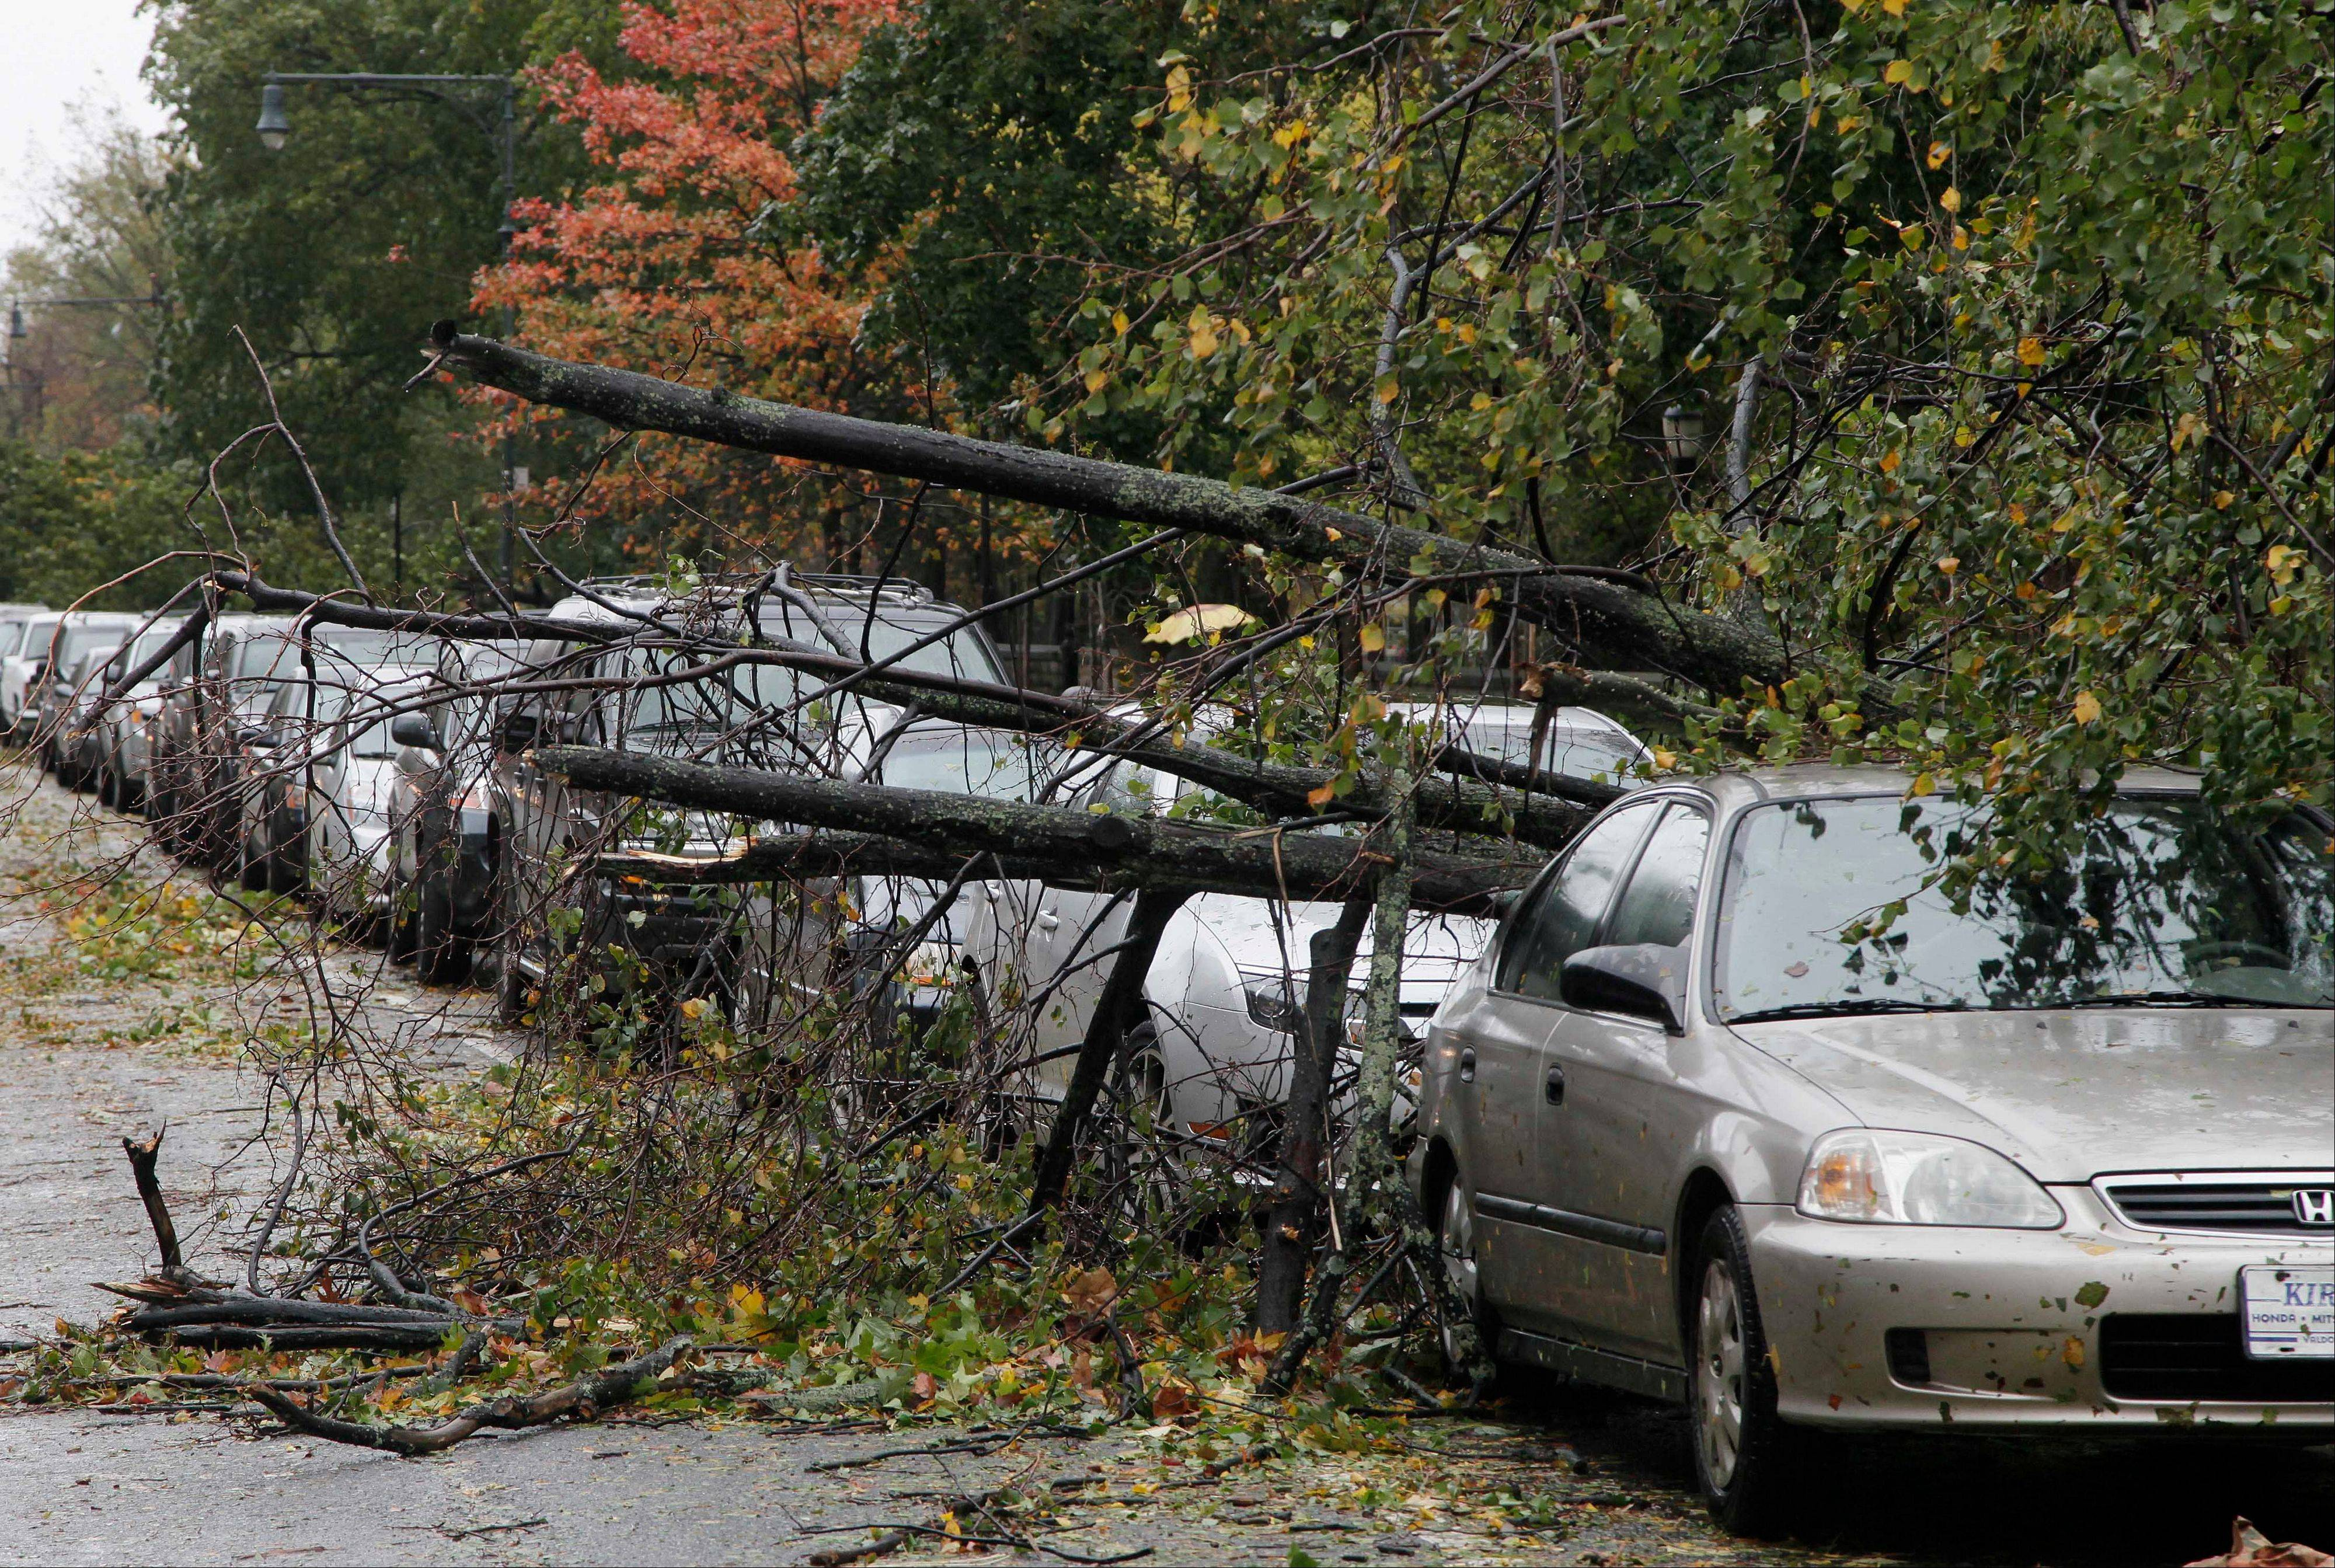 Trees lie fallen across parked cars in the Brooklyn borough of New York the morning after superstorm Sandy made landfall, Tuesday, Oct. 30, 2012. A record storm surge that was higher than predicted along with high winds damaged the electrical system and plunged millions of people into darkness. Utilities say it could be up to a week before power is fully restored.